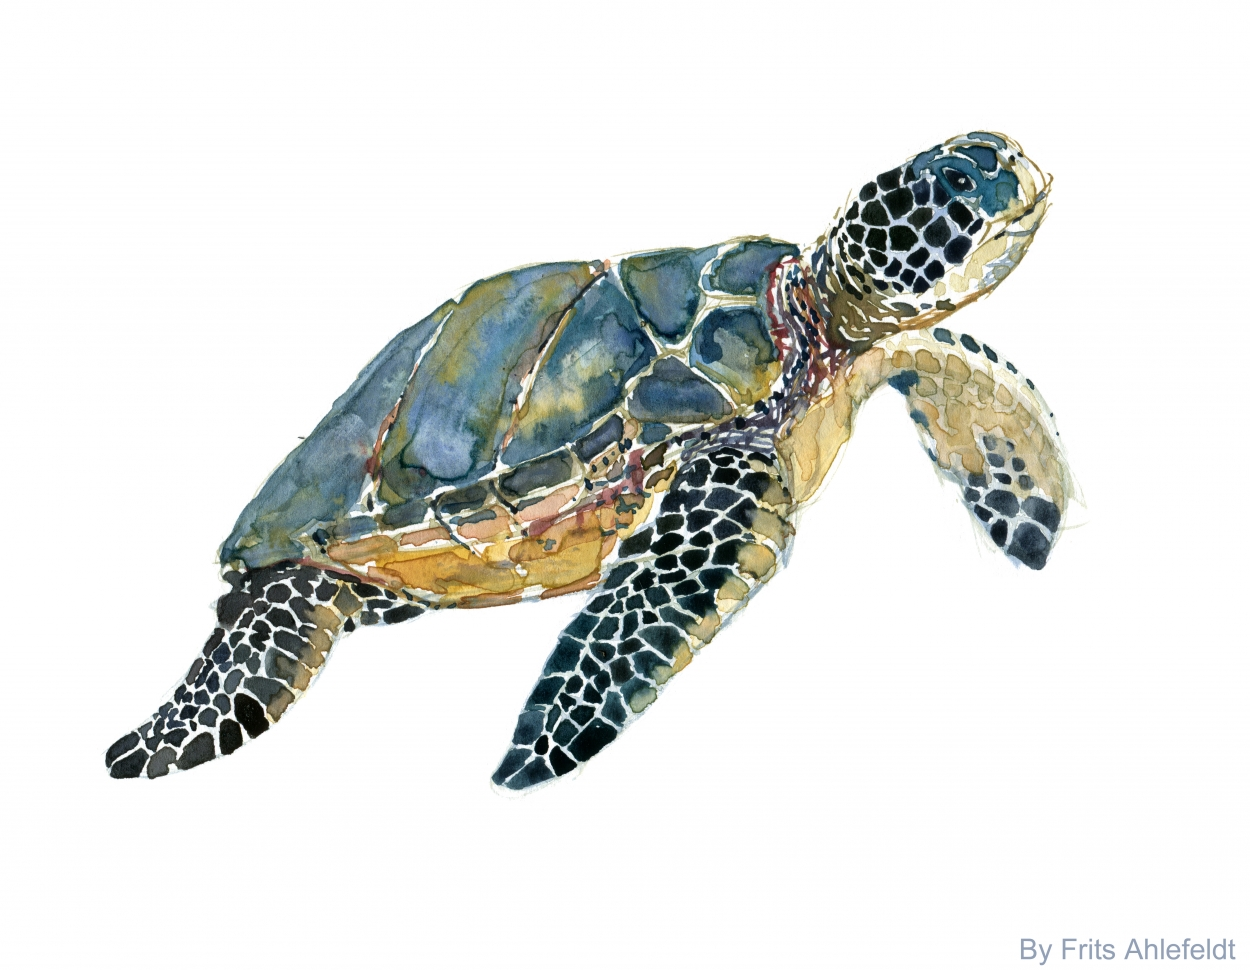 1250x970 Sea Turtles Watercolors The Hiking Artist Project By Frits Ahlefeldt